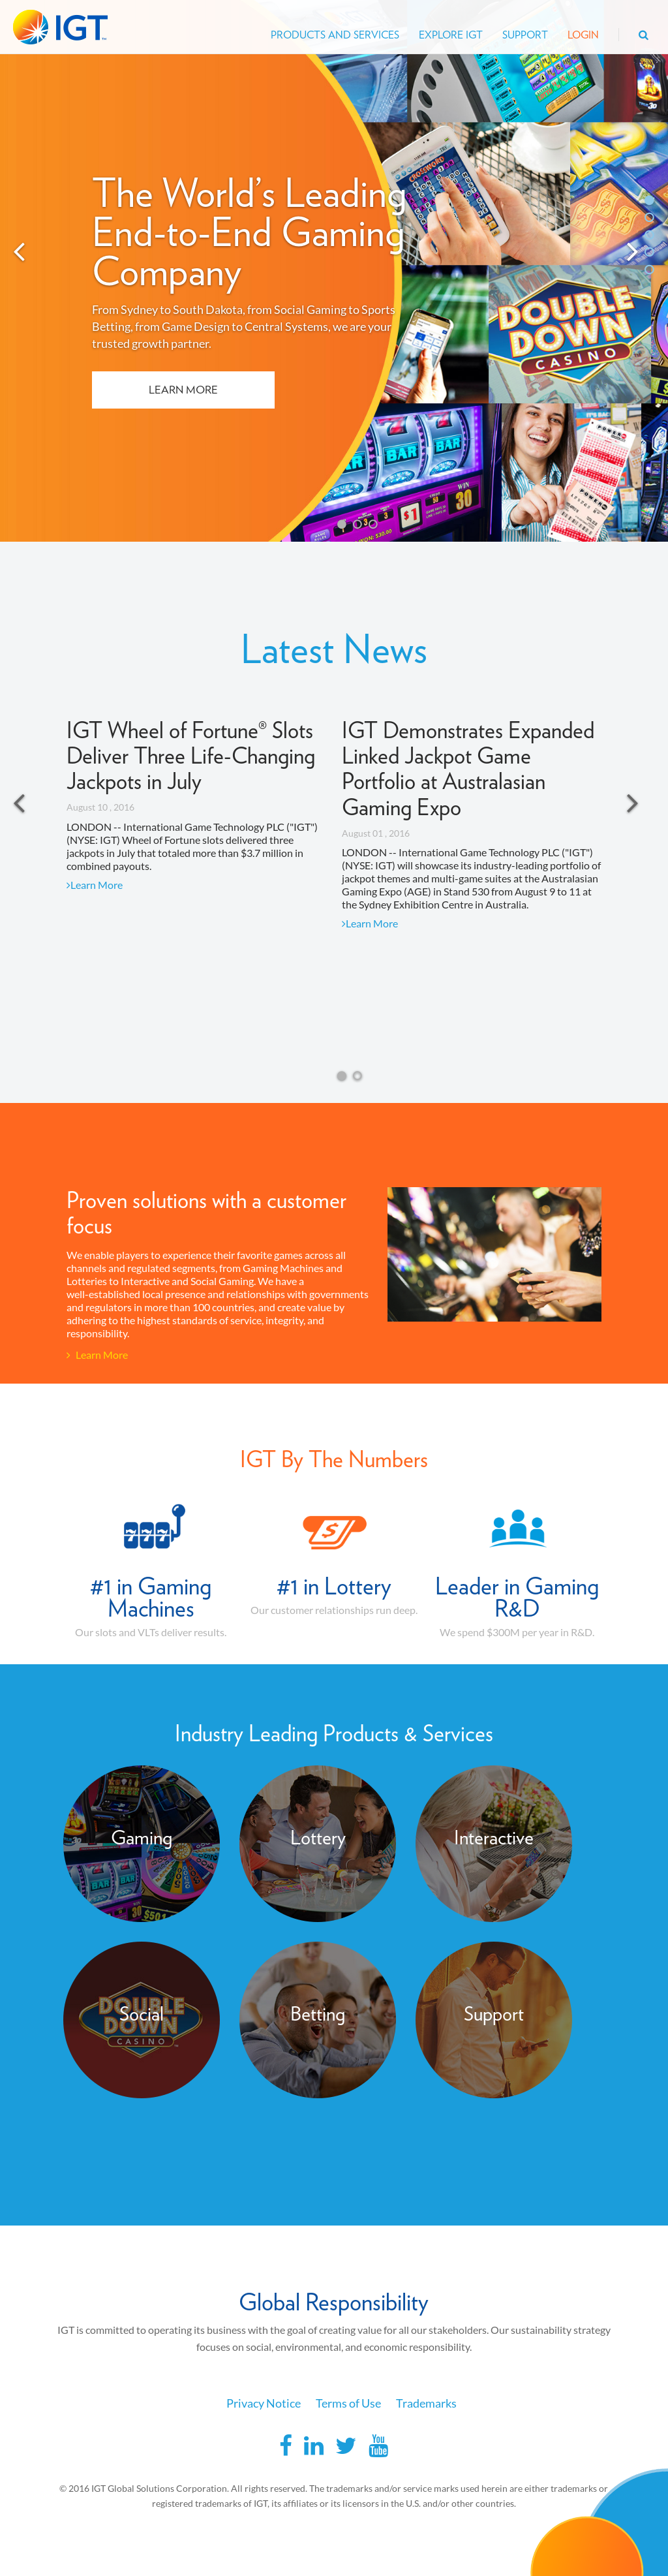 IGT Competitors, Revenue and Employees - Owler Company Profile